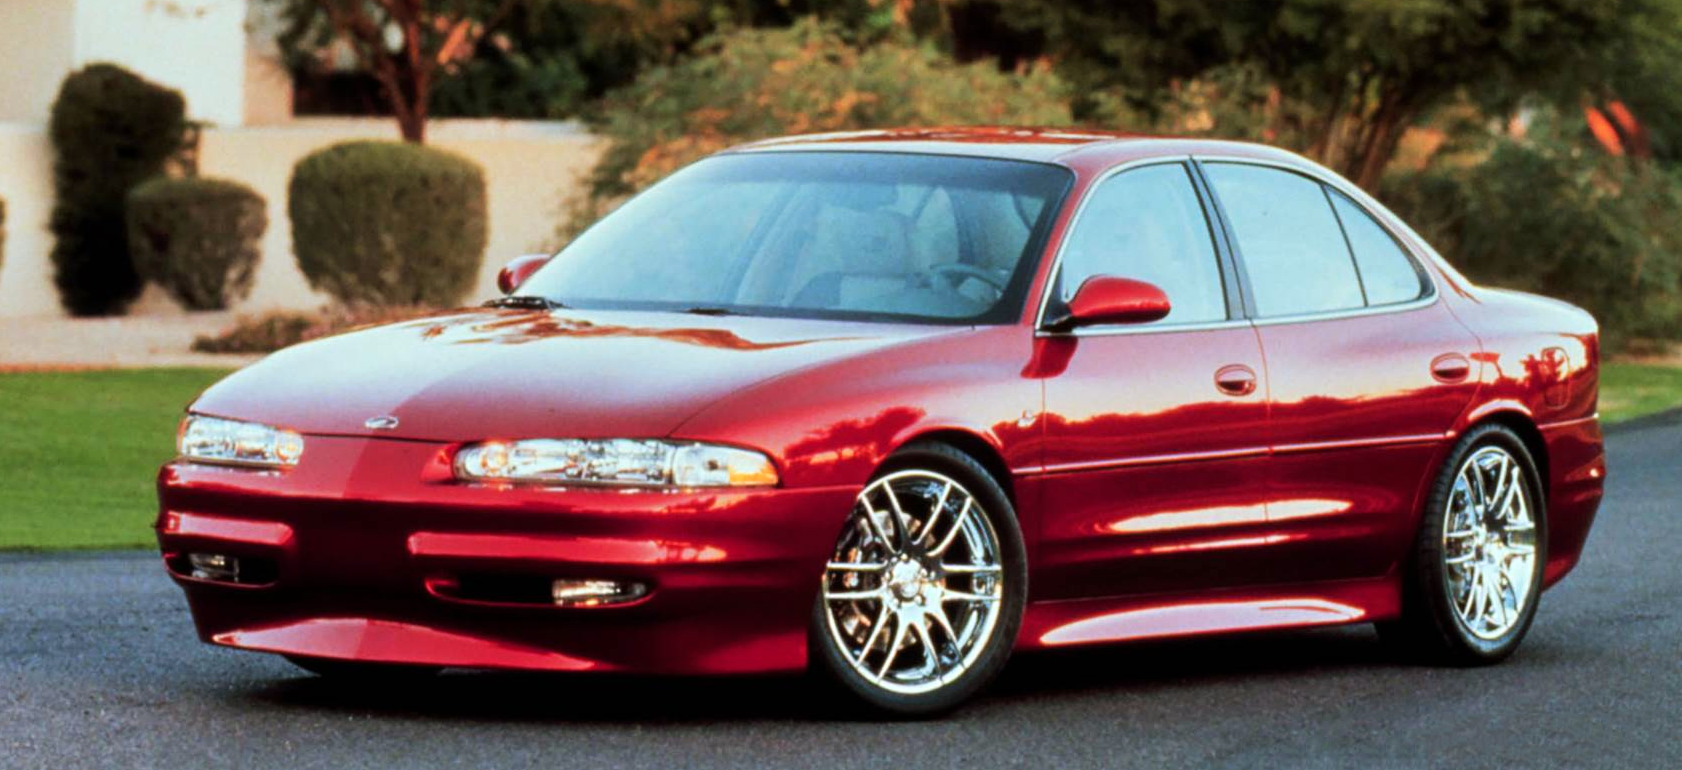 1999 Oldsmobile Intrigue OSV